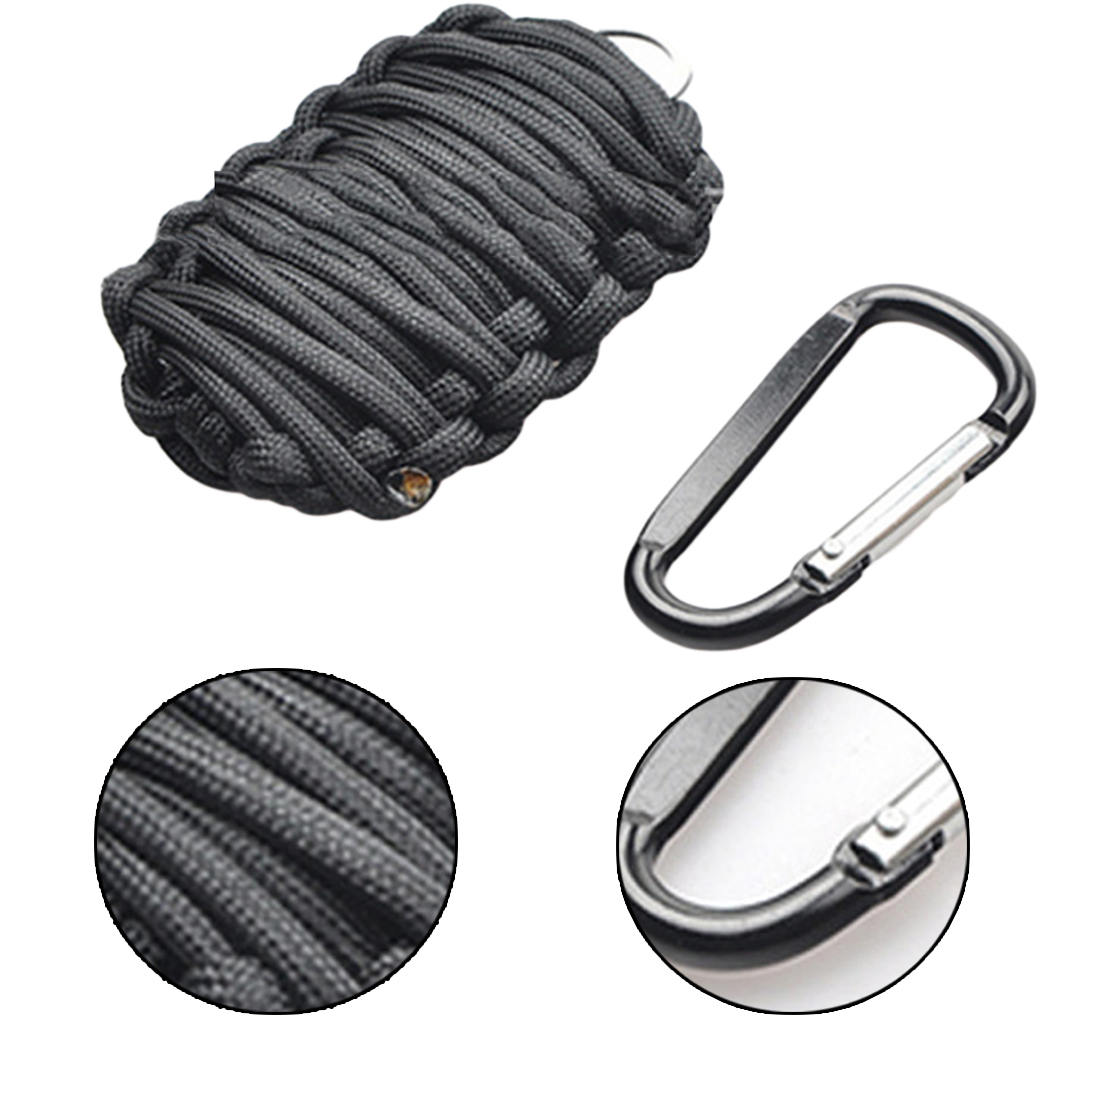 NEW 2018 Outdoor Survival Multifunction Survival Kit Carabiner Paracord Fishing Emergency Gear Set Camping Outdoor Hiking